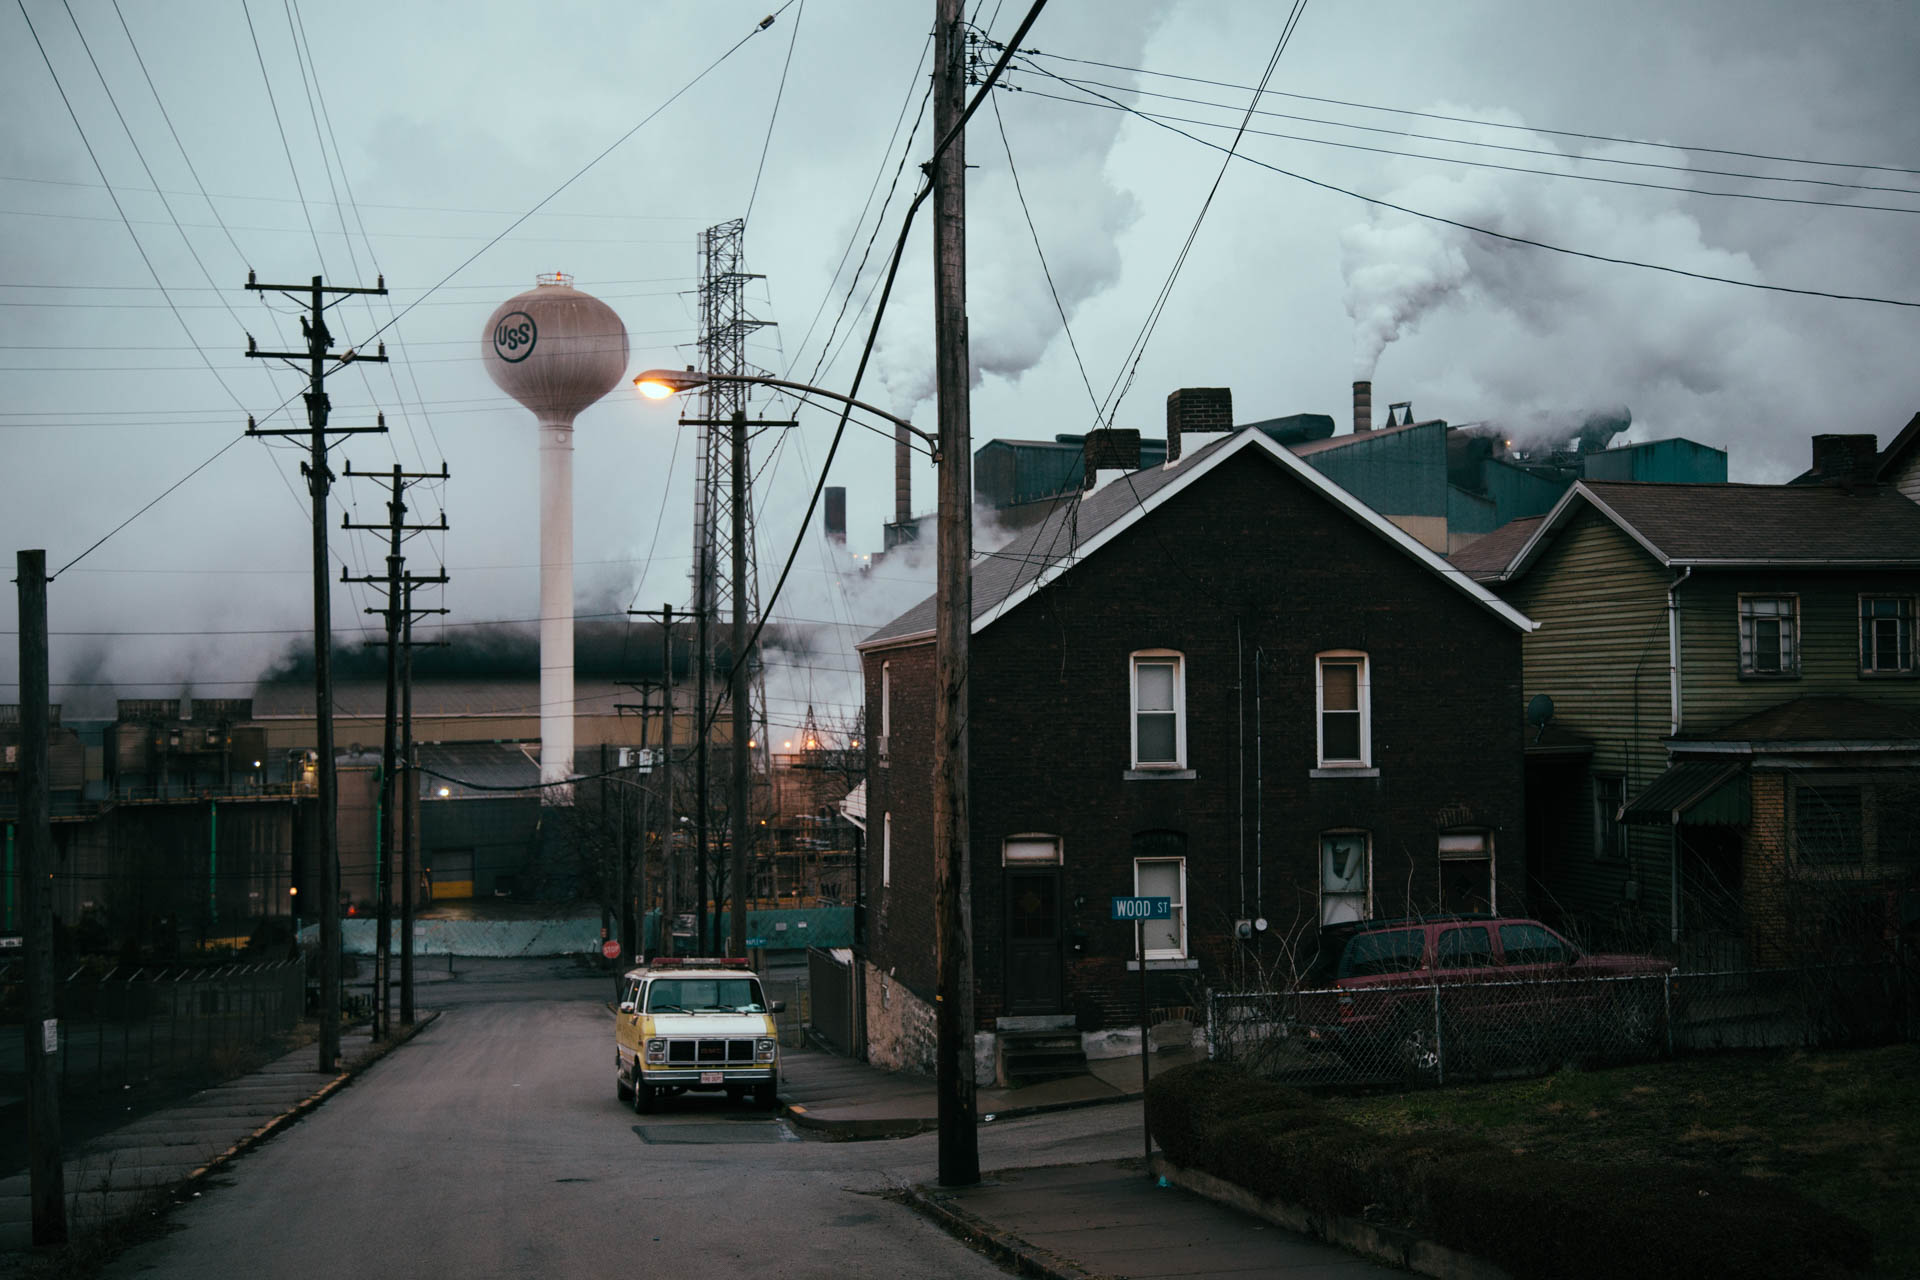 us-steel-edgar-thomson-plant-water-tower-braddock-pa-3834